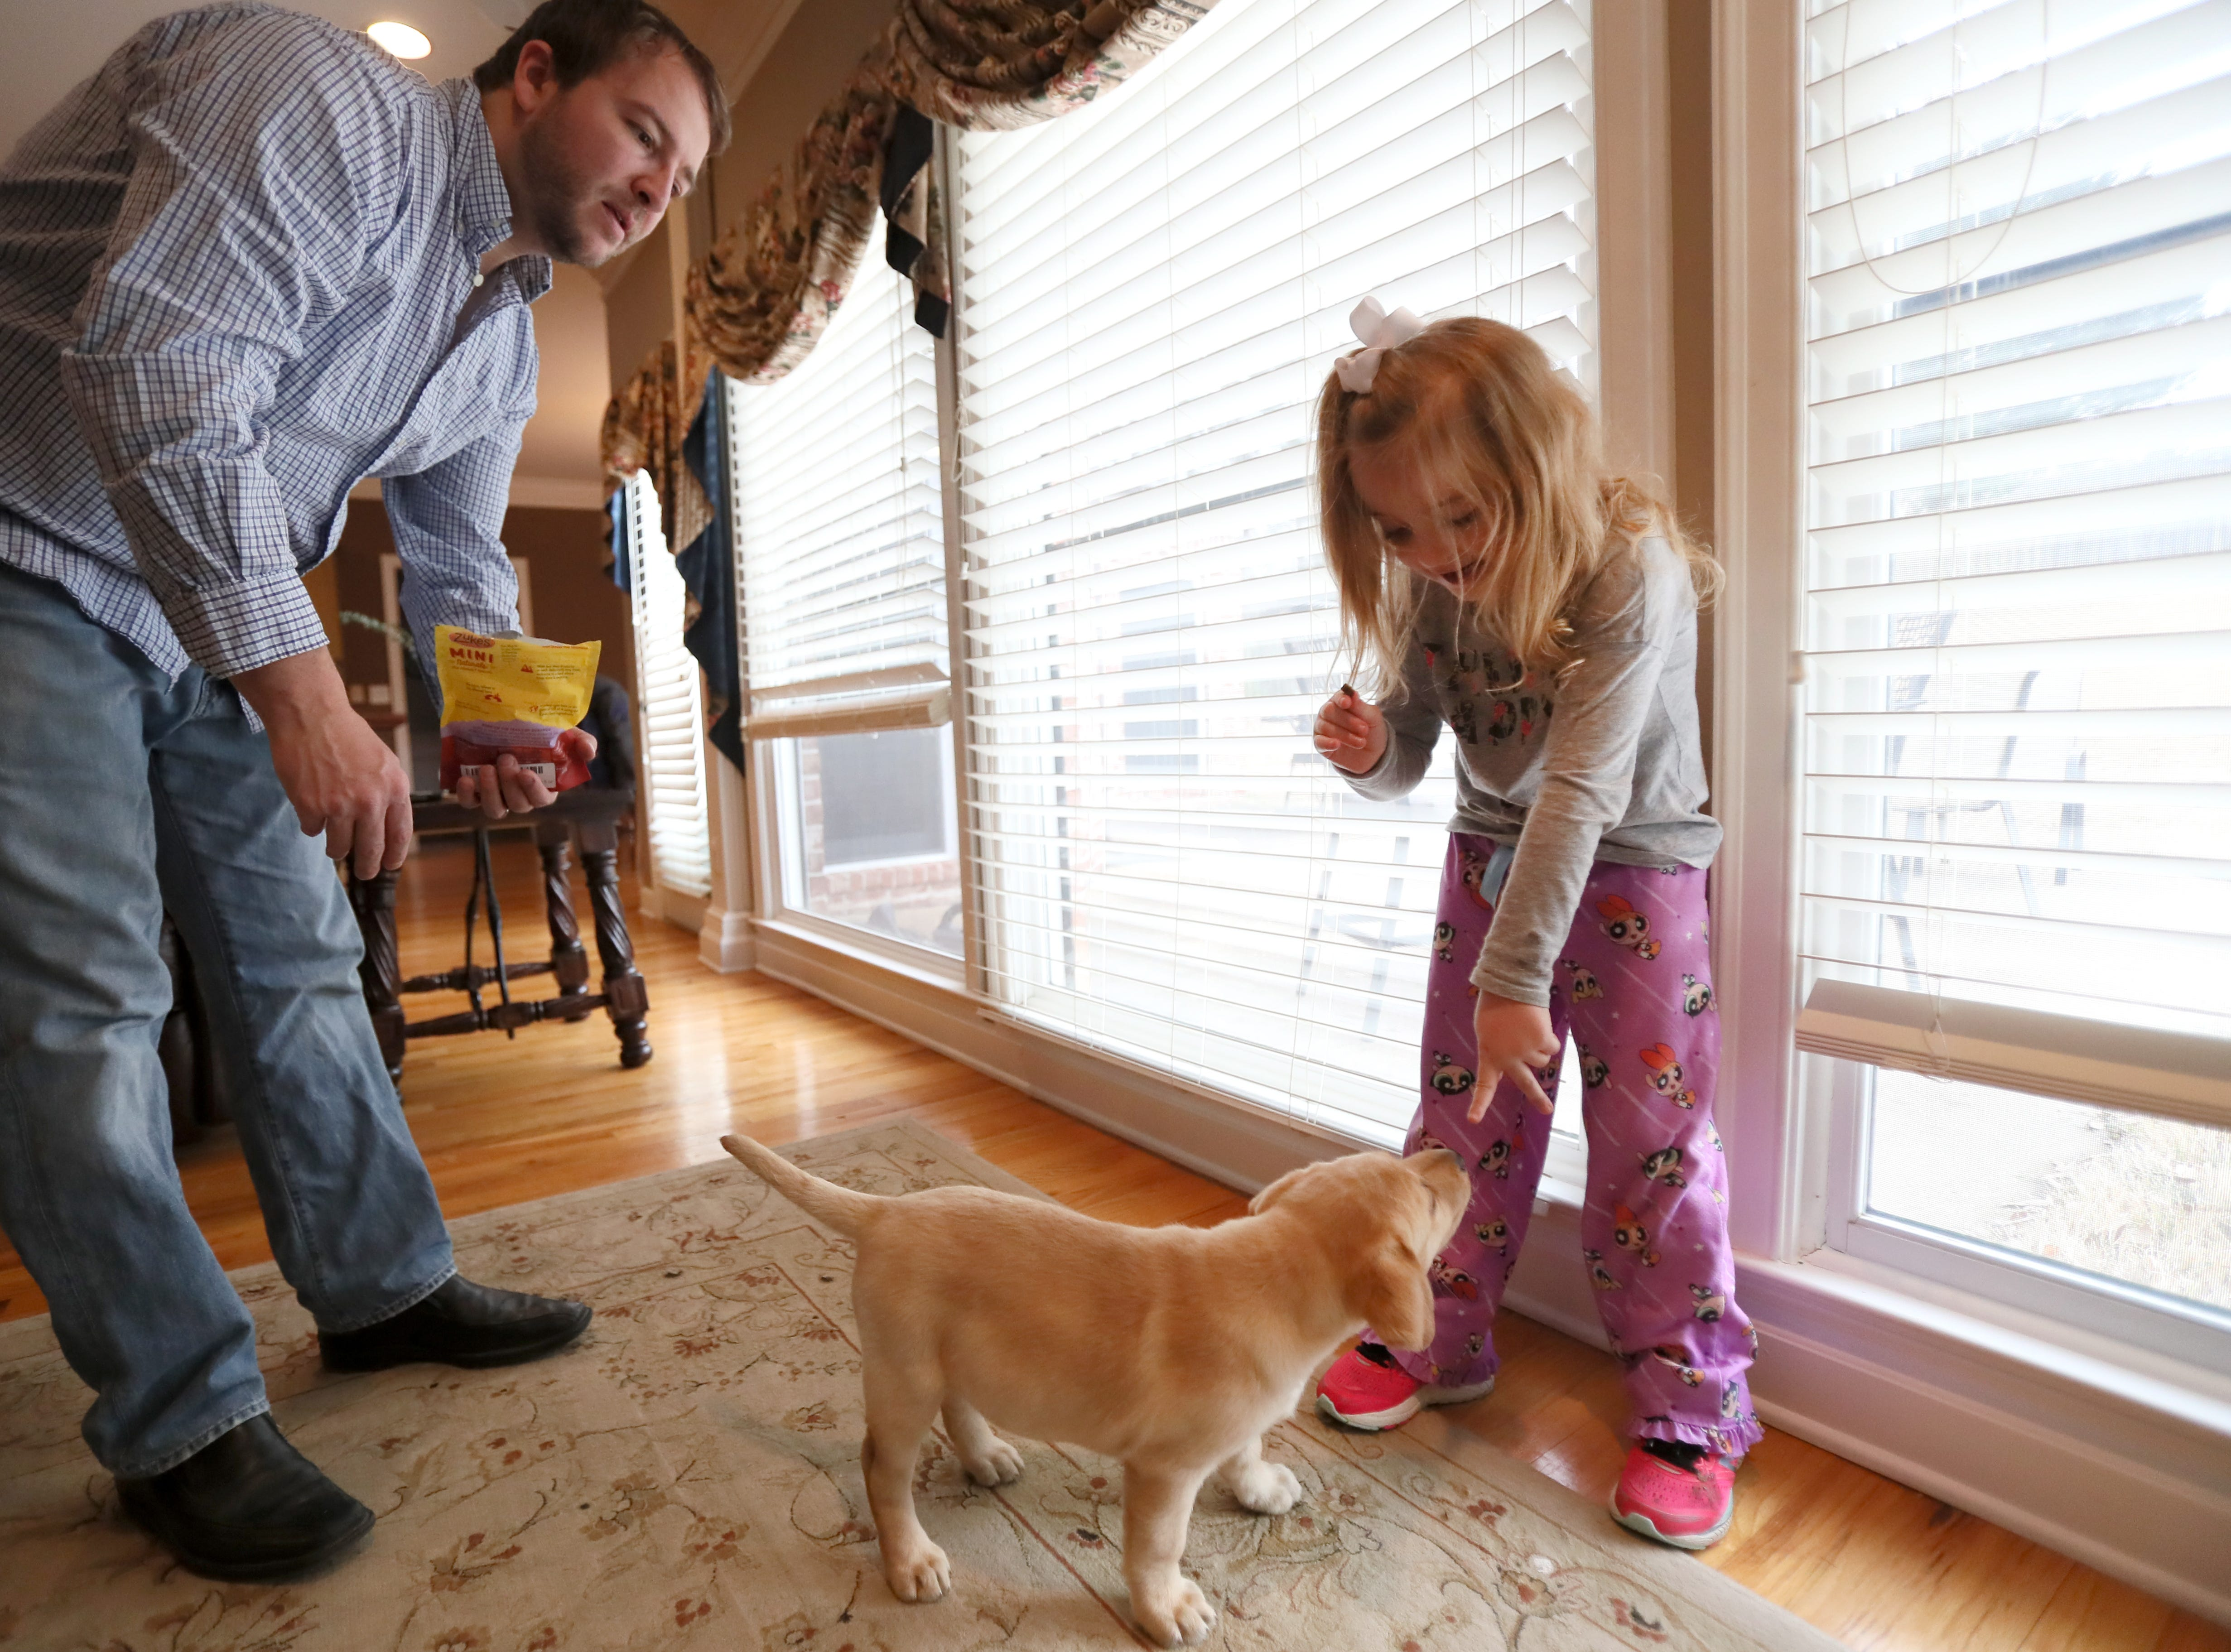 Ava Reed, 6, plays with her new puppy Maggie as her father Jimmy Reed watches, at the family's Arlington home on Friday, Feb. 1, 2019. Ava received Maggie, who though only eight weeks old, is going through training from Jeff Tawater, the executive director of K9 Direction, to be her service animal after an outpouring of community support helped raise the over $10,000 required for her training and equipment.